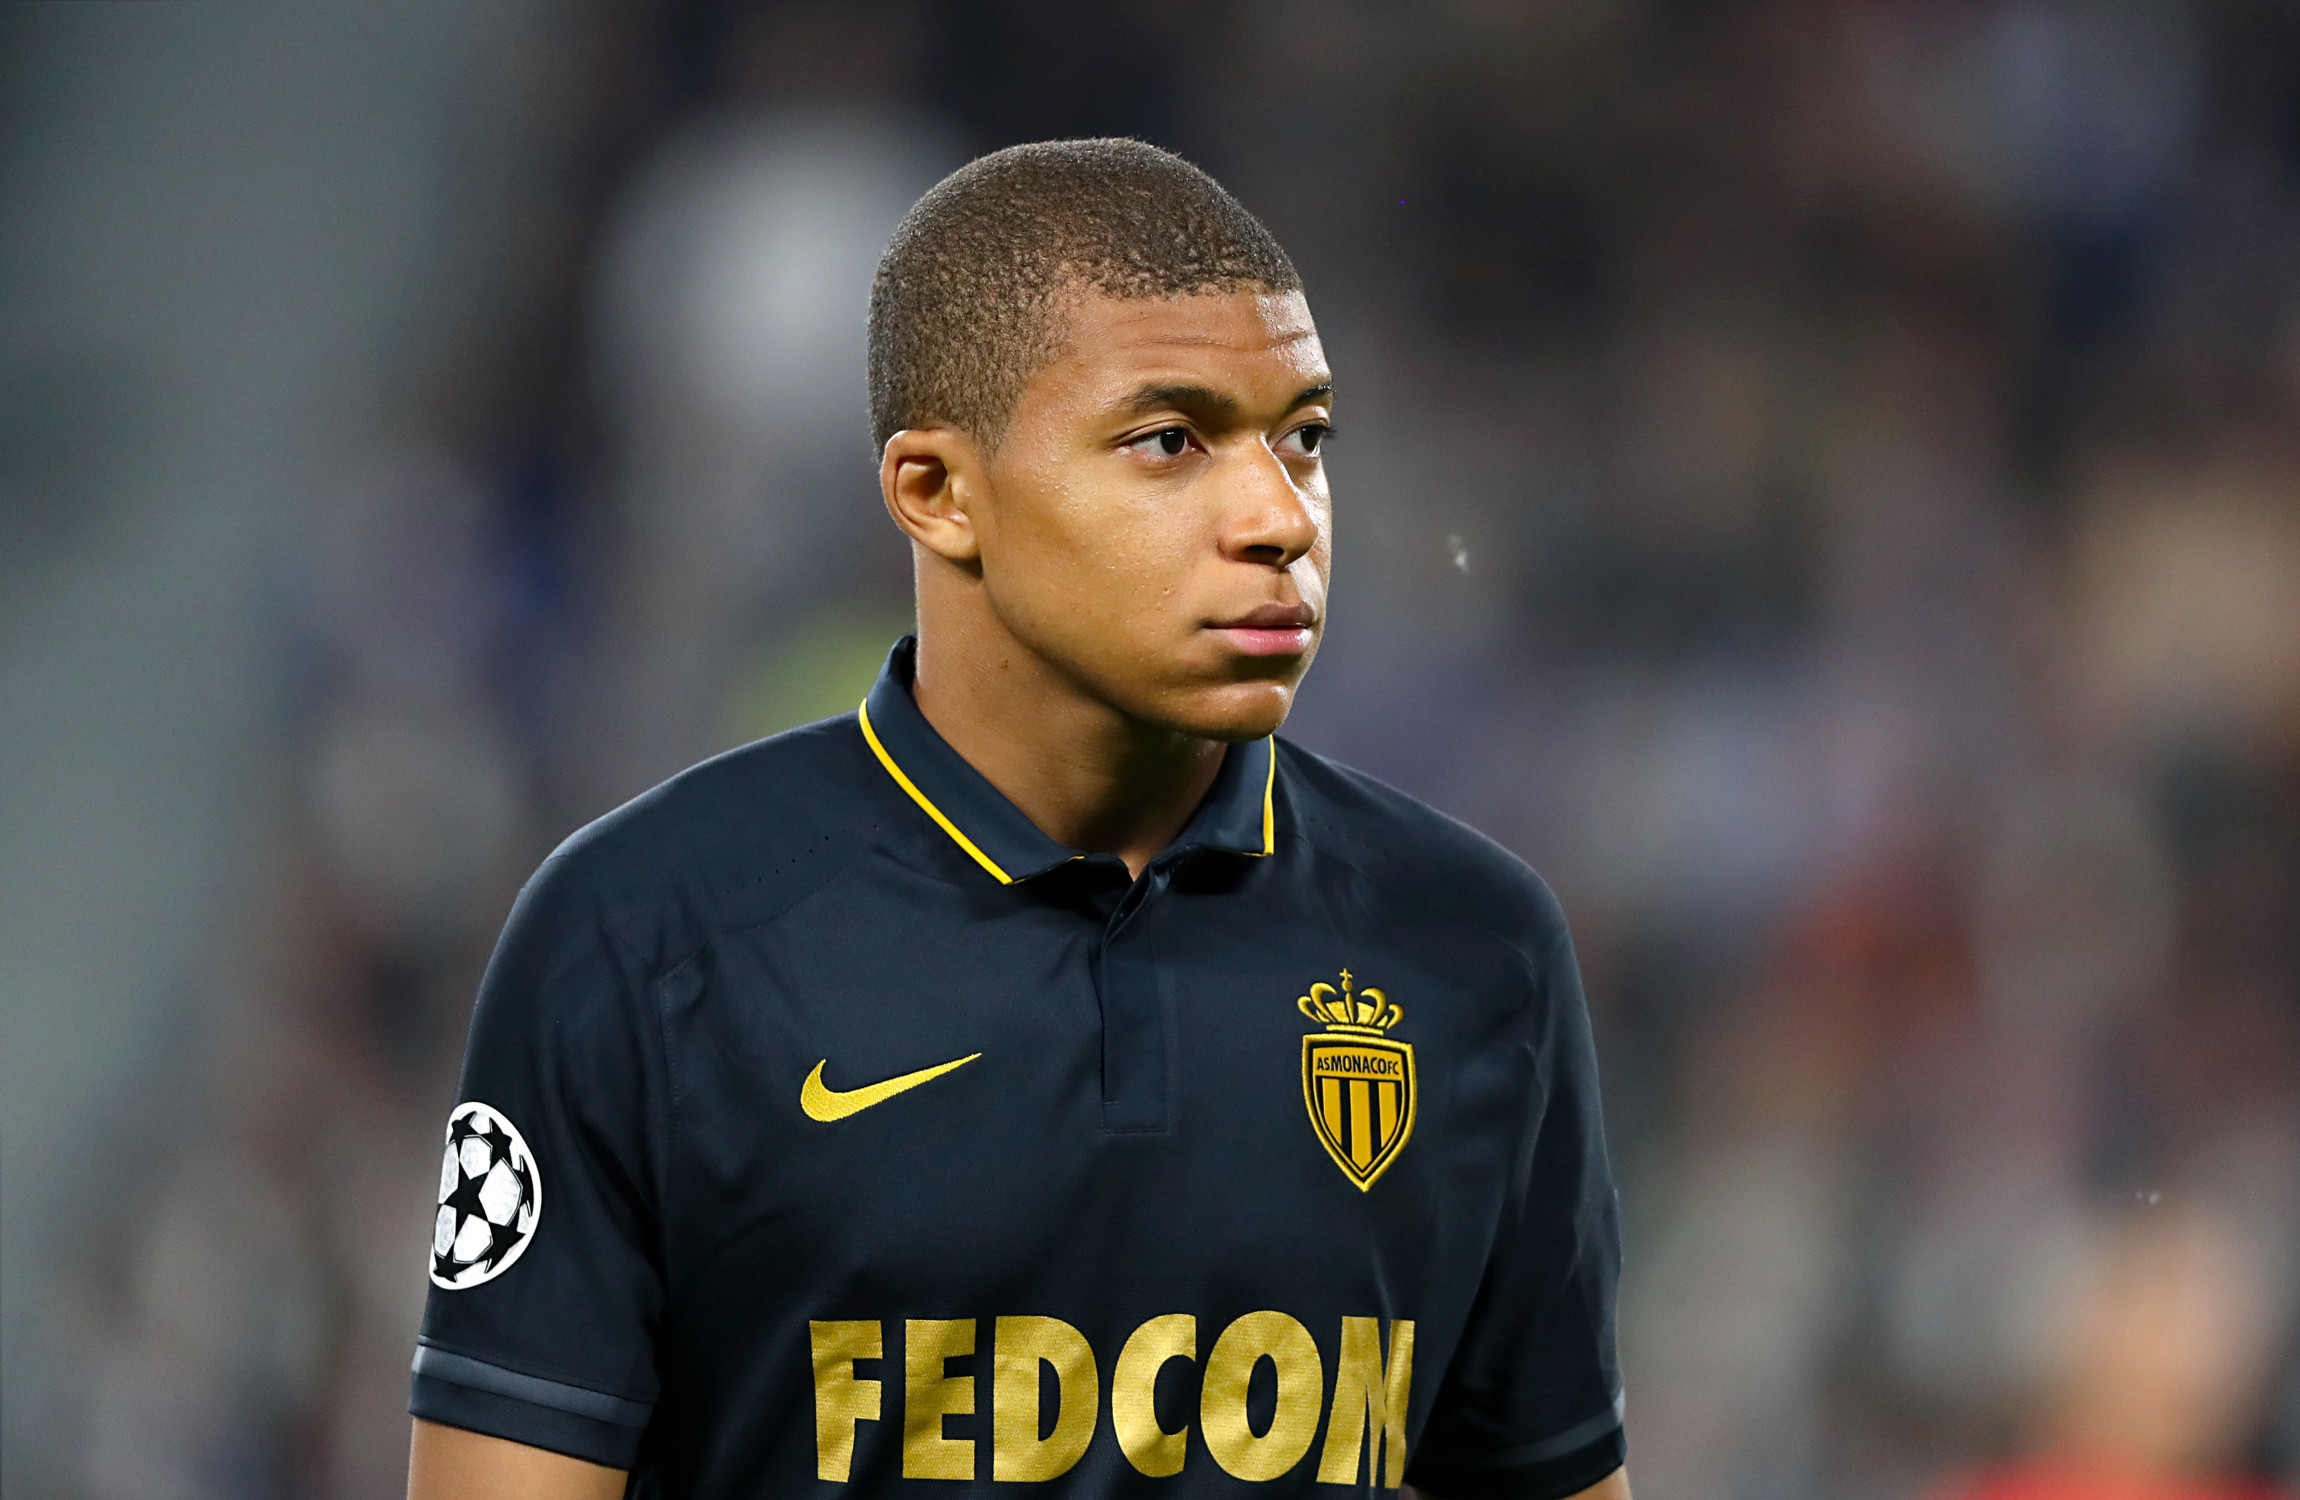 PSG closing in on €220m deal for Monoco's Kylian Mbappe and Fabinho